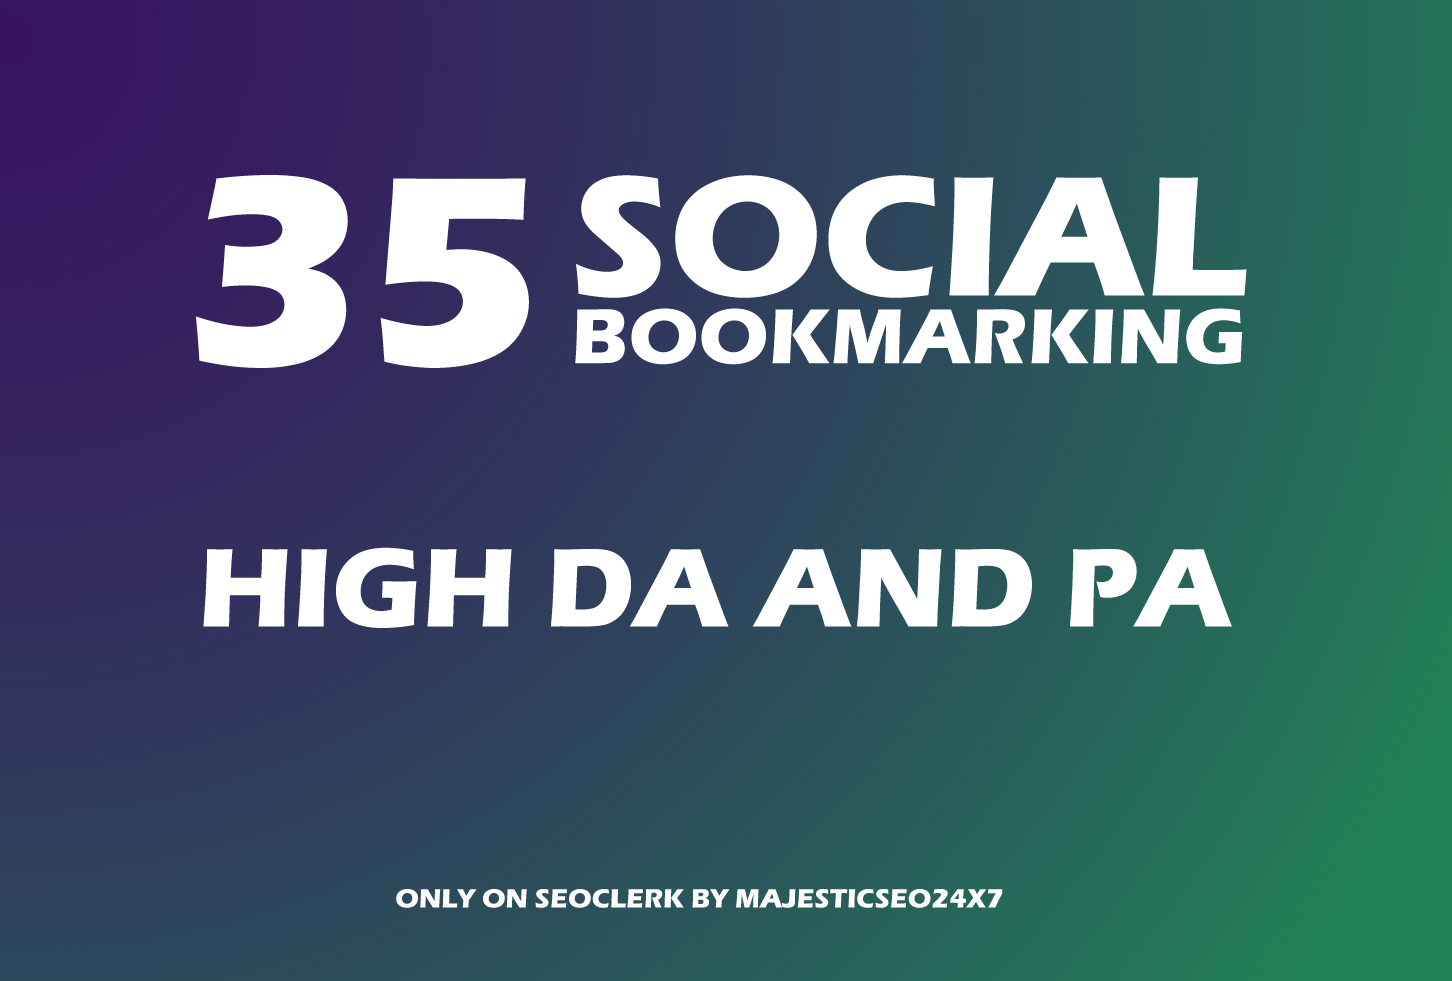 Instant 35 Live Social Bookmarking Links within 24 hours for 3